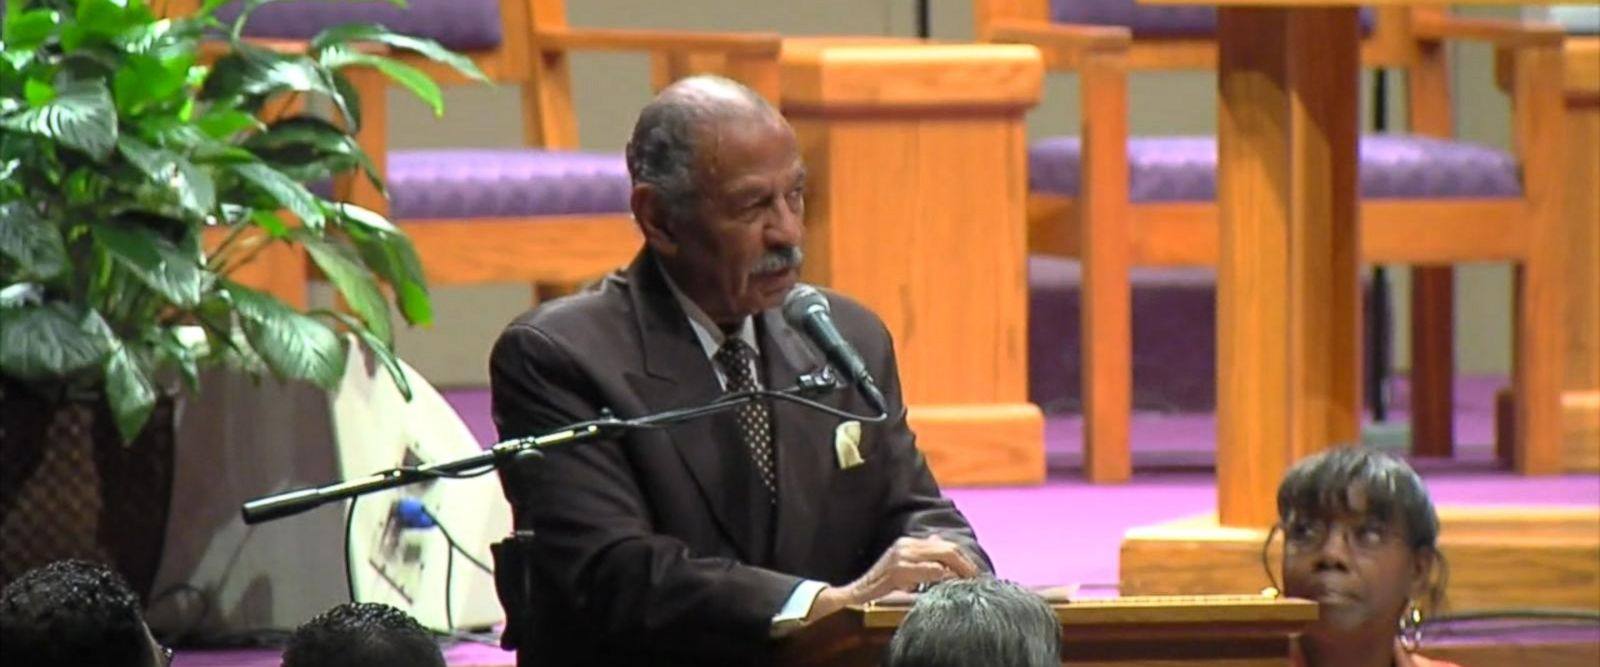 VIDEO: The House Ethics Committee has launched an investigation into Conyers.